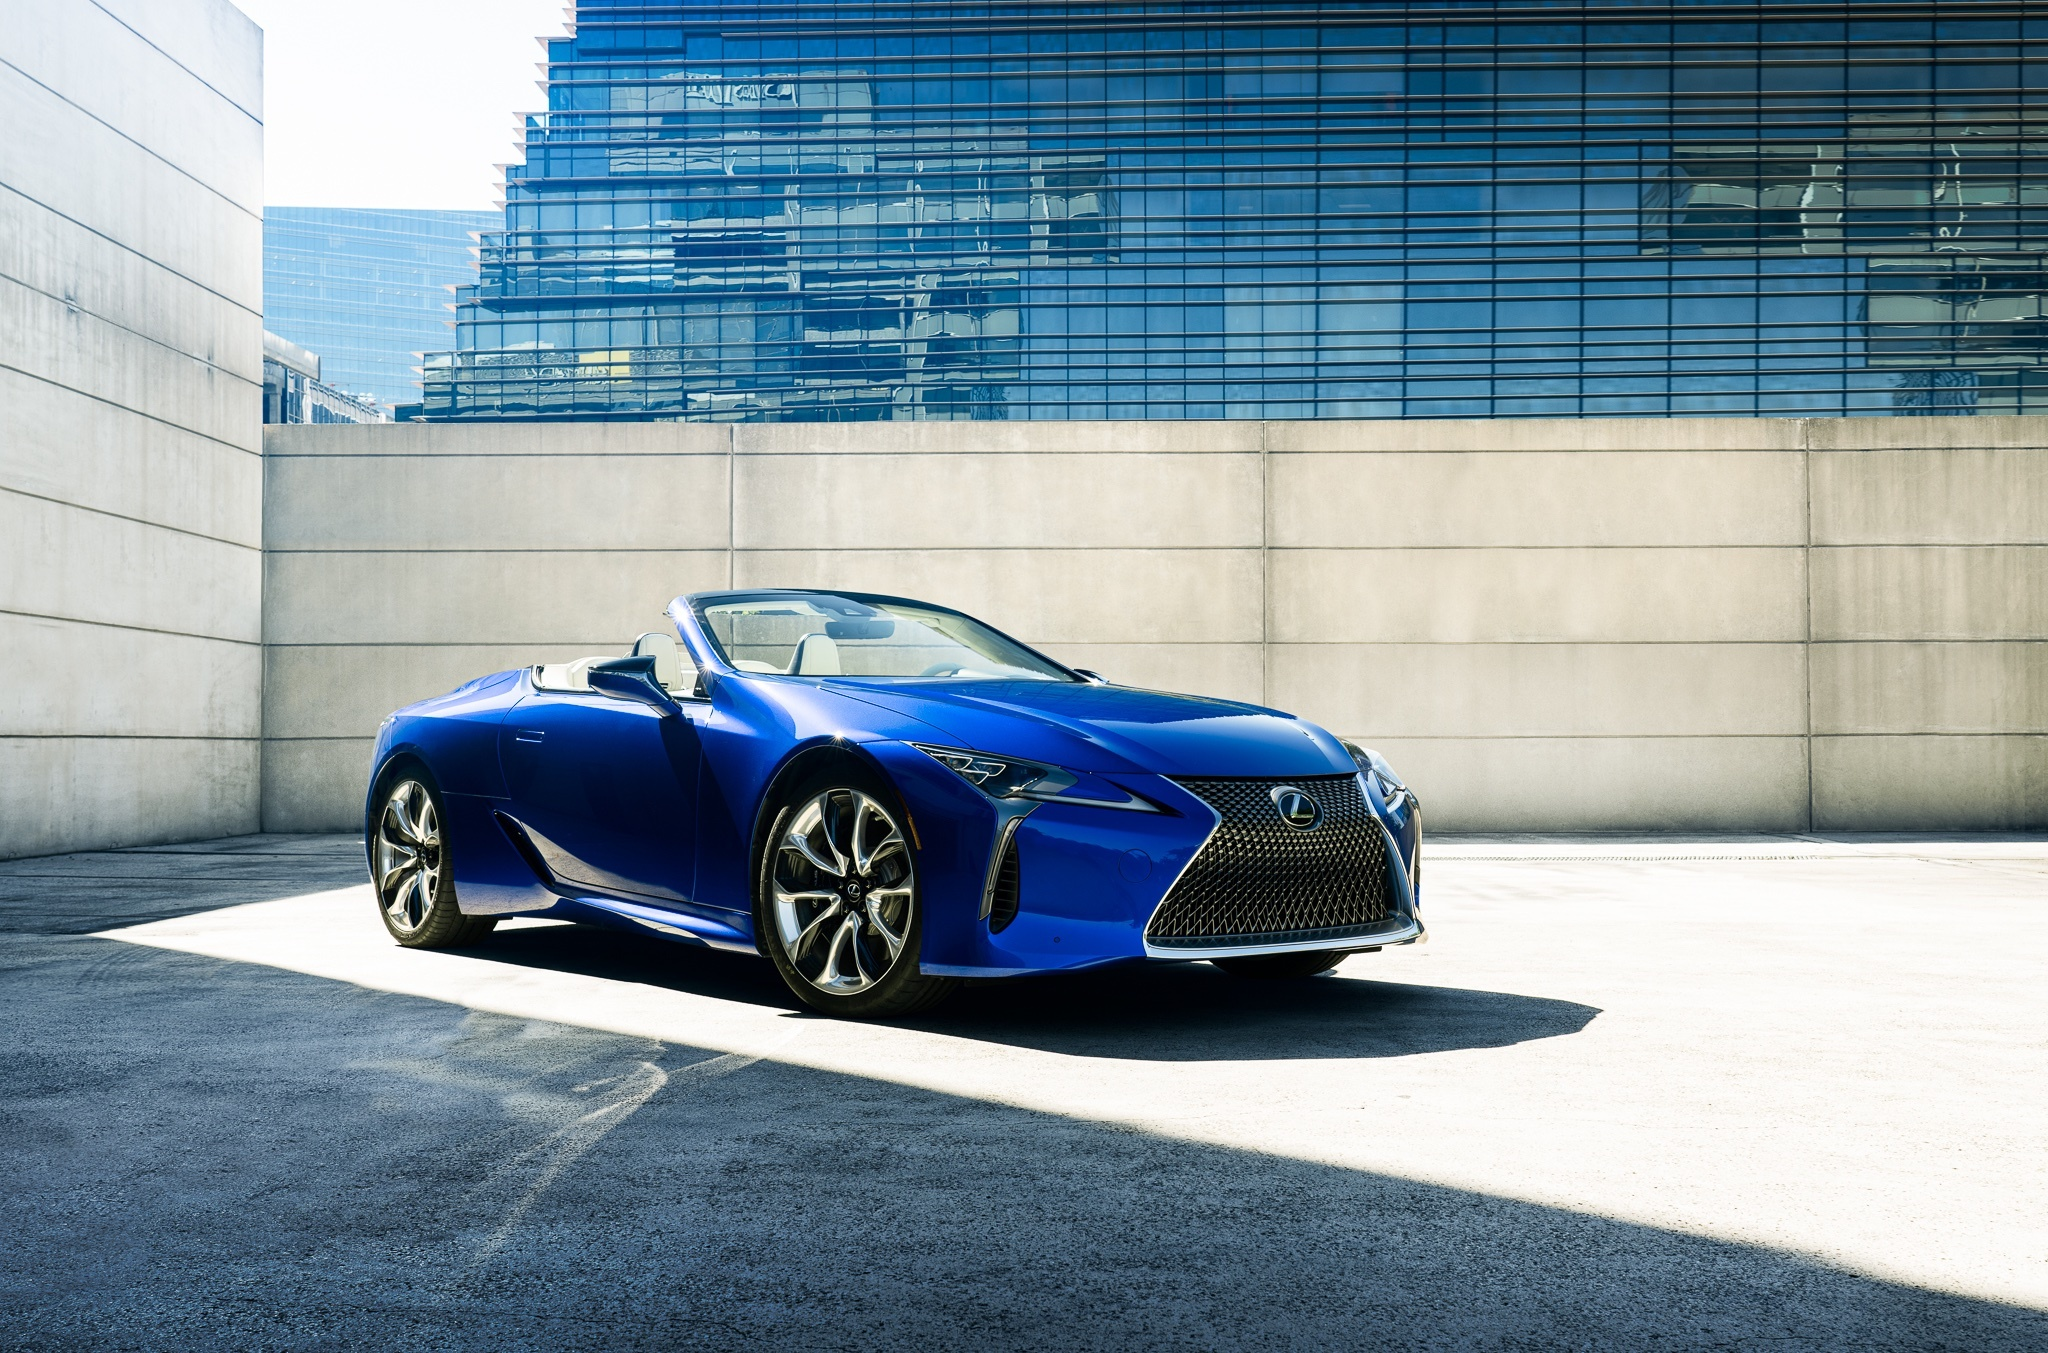 Lexus has announced a special version of the LC Convertible called Regatta Edition. As the name implies, the car draws inspiration from marine sailing.